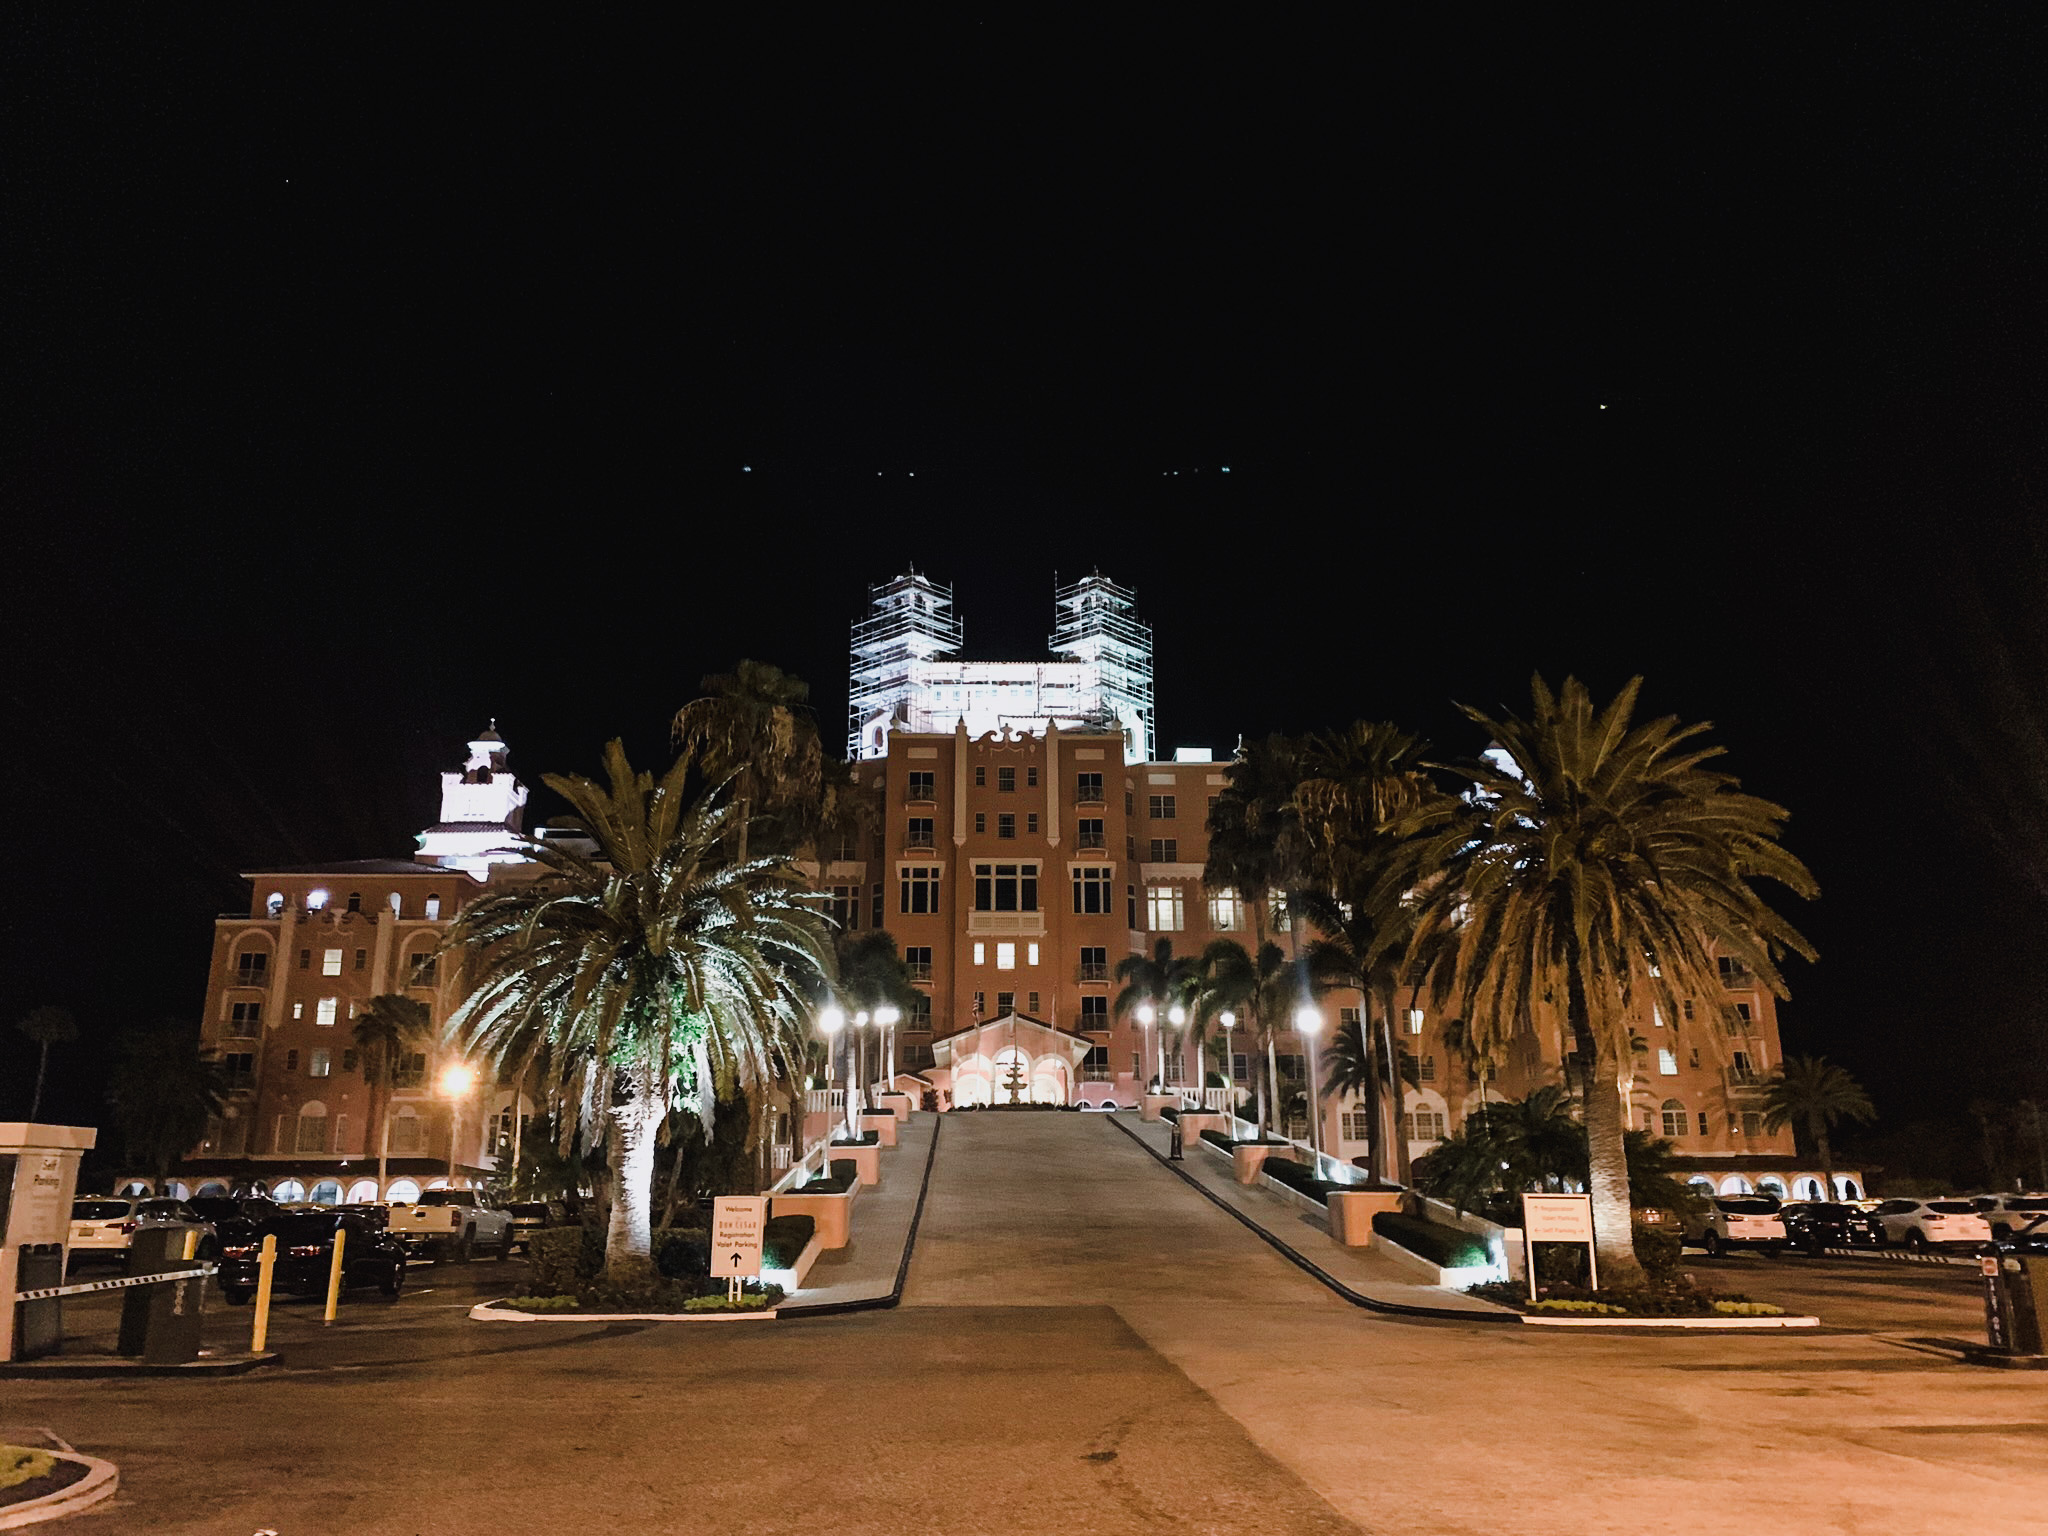 the Don CeSar Hotel is one of the most haunted places in Florida